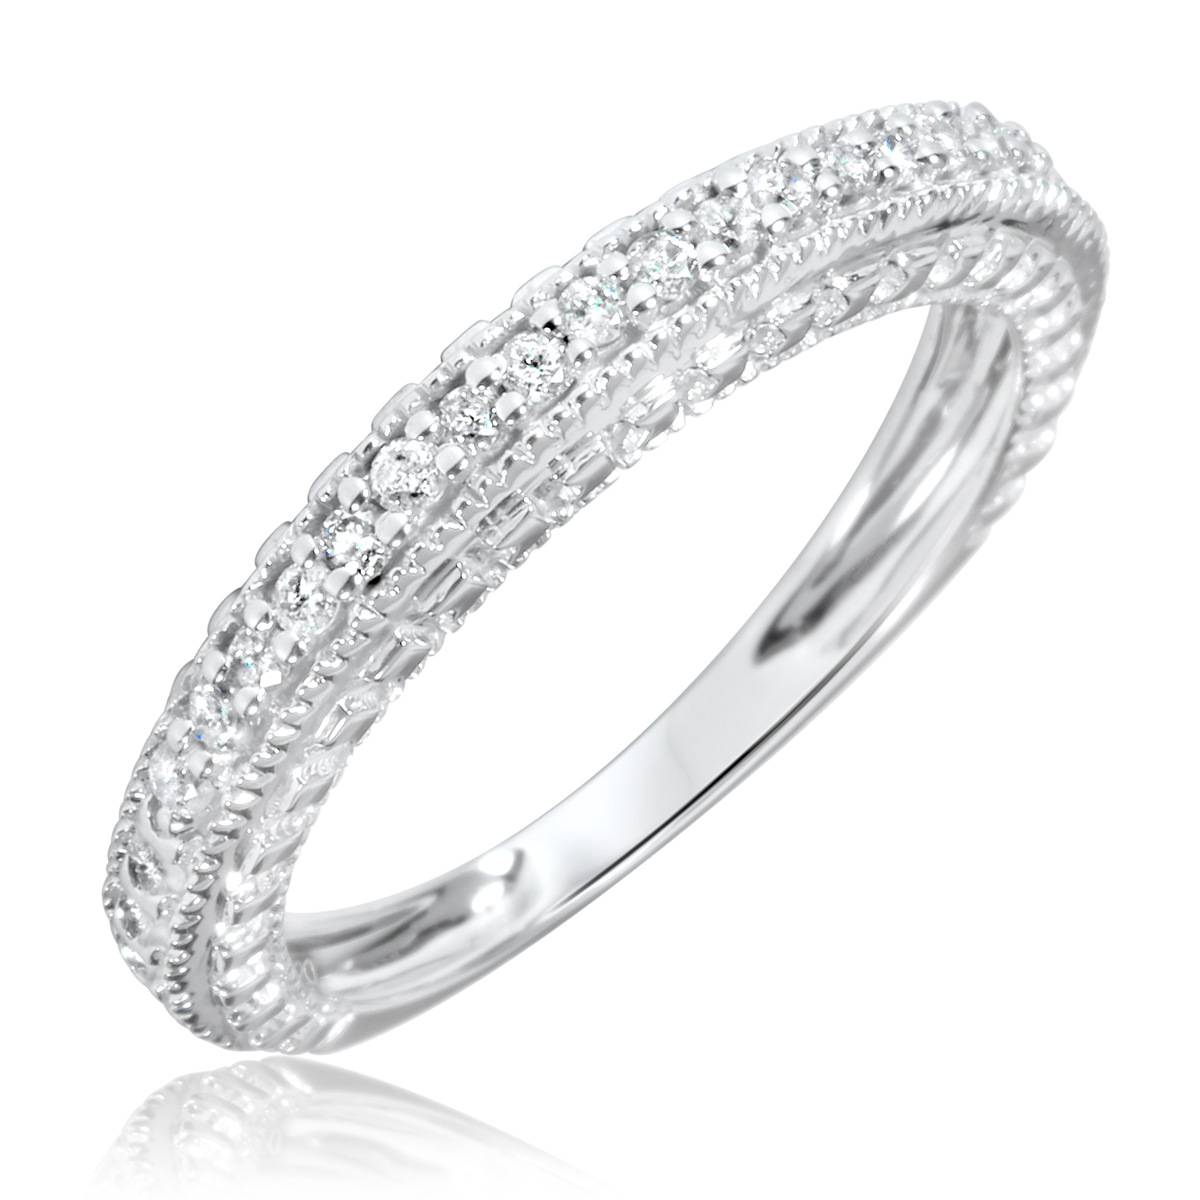 Women39;s Wedding Ring 10K White Gold  My Trio Rings  BT109W10KL